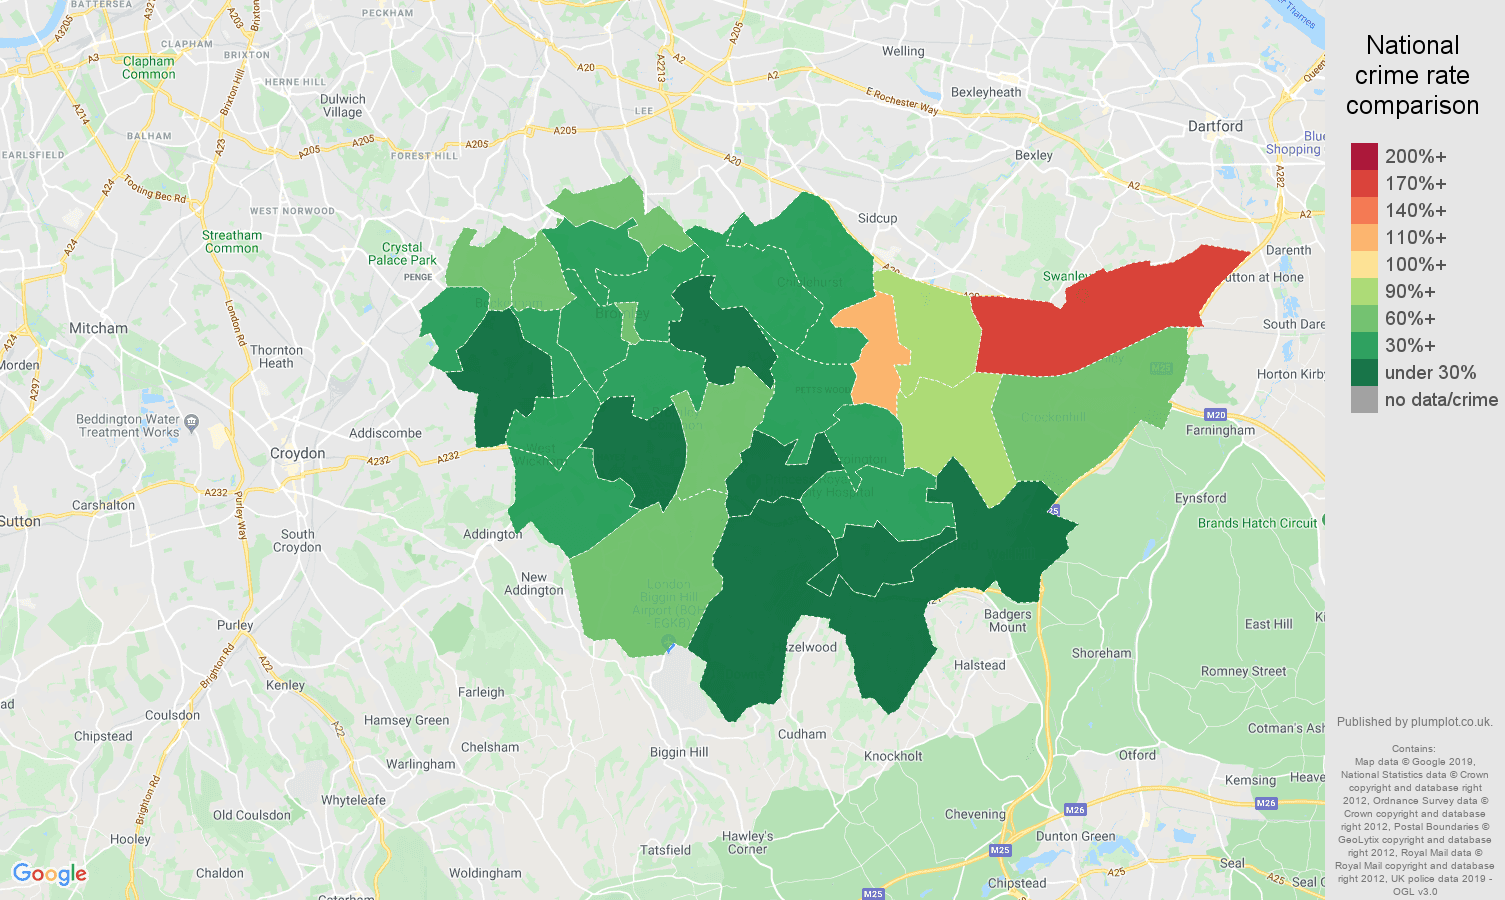 Bromley other crime rate comparison map